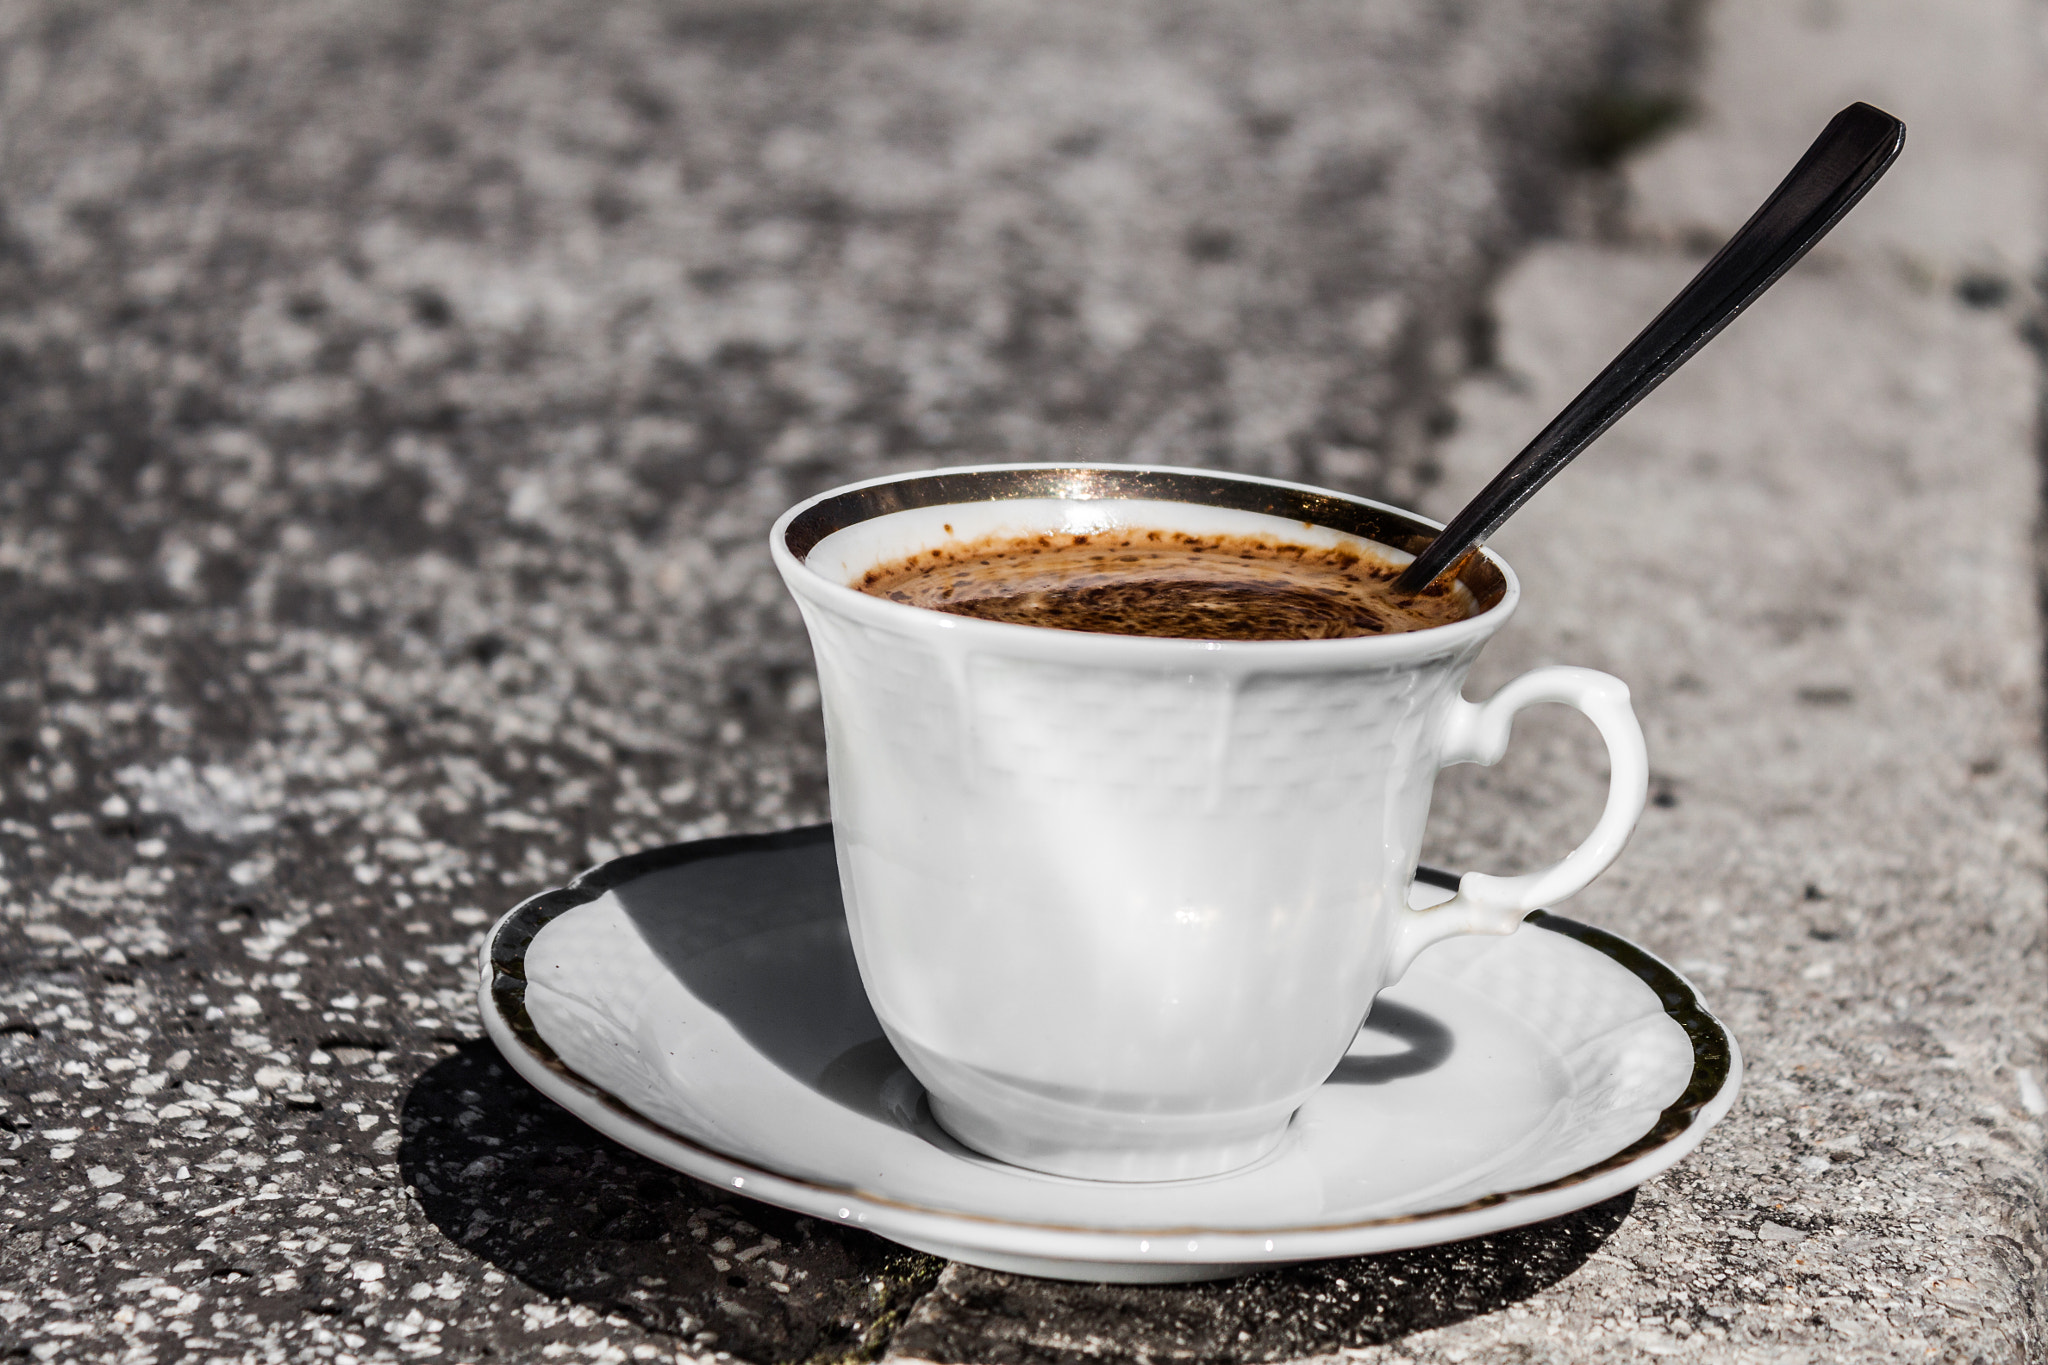 Photograph Coffe to go by Michal Paulech on 500px